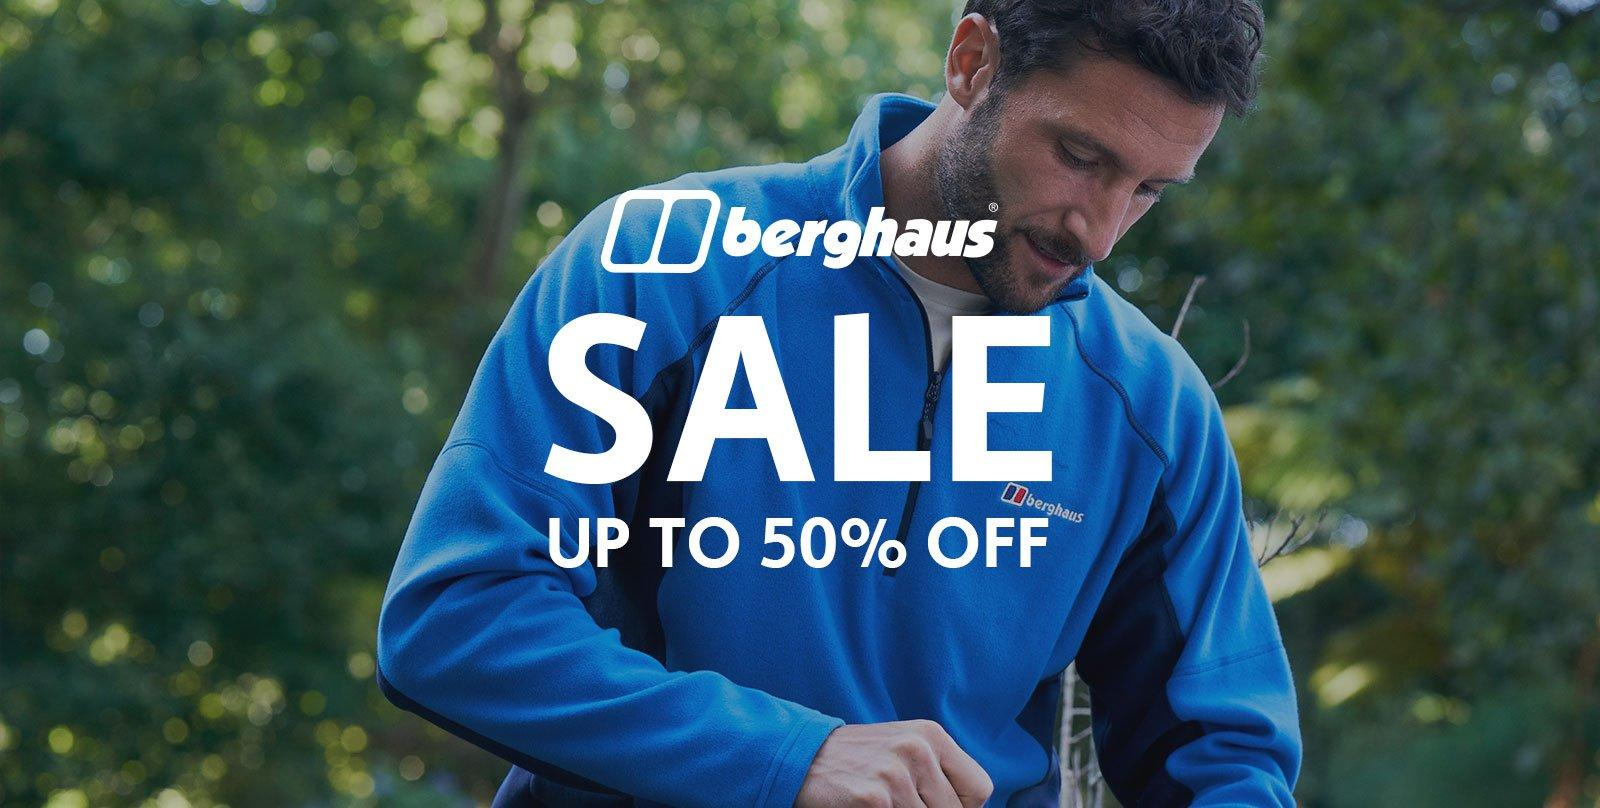 Berghaus Sale - Up To 50% Off